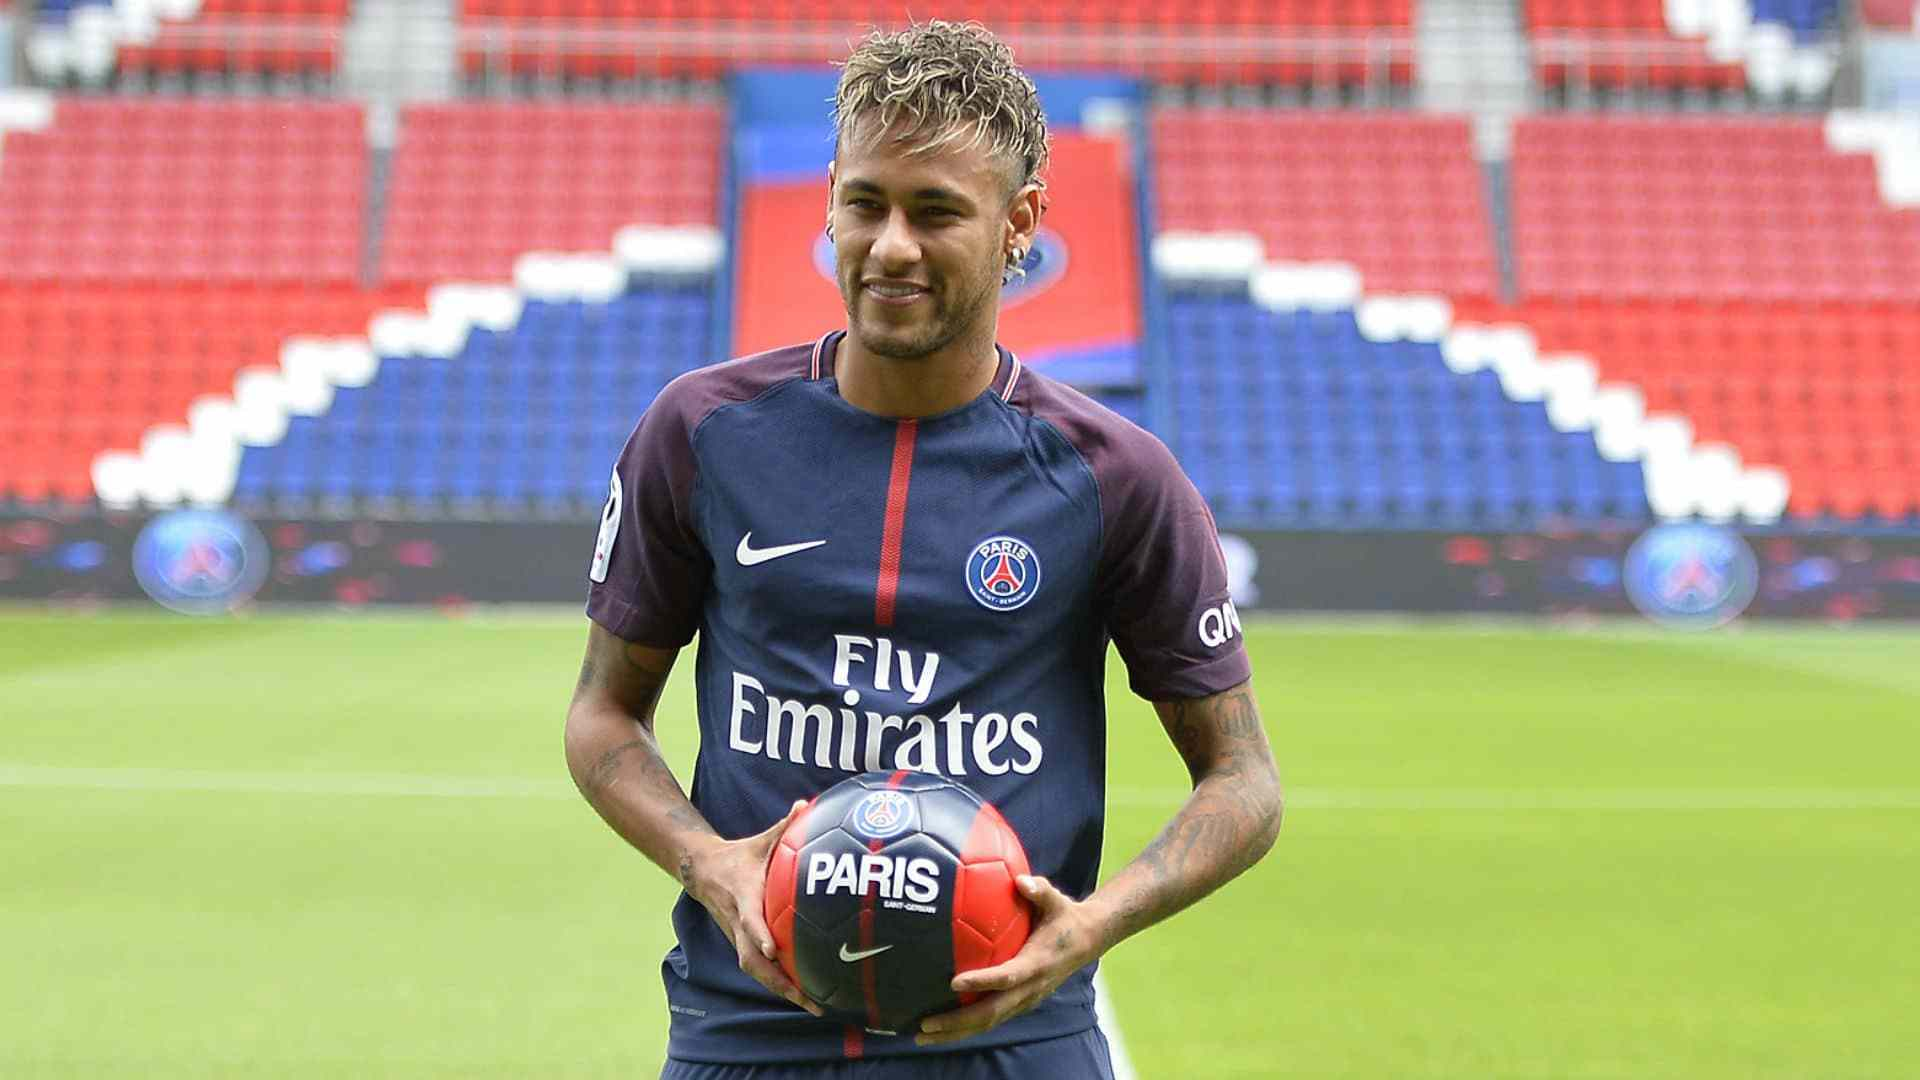 PSG To Determine Recovery Time For Neymar Jr's Ankle Injury